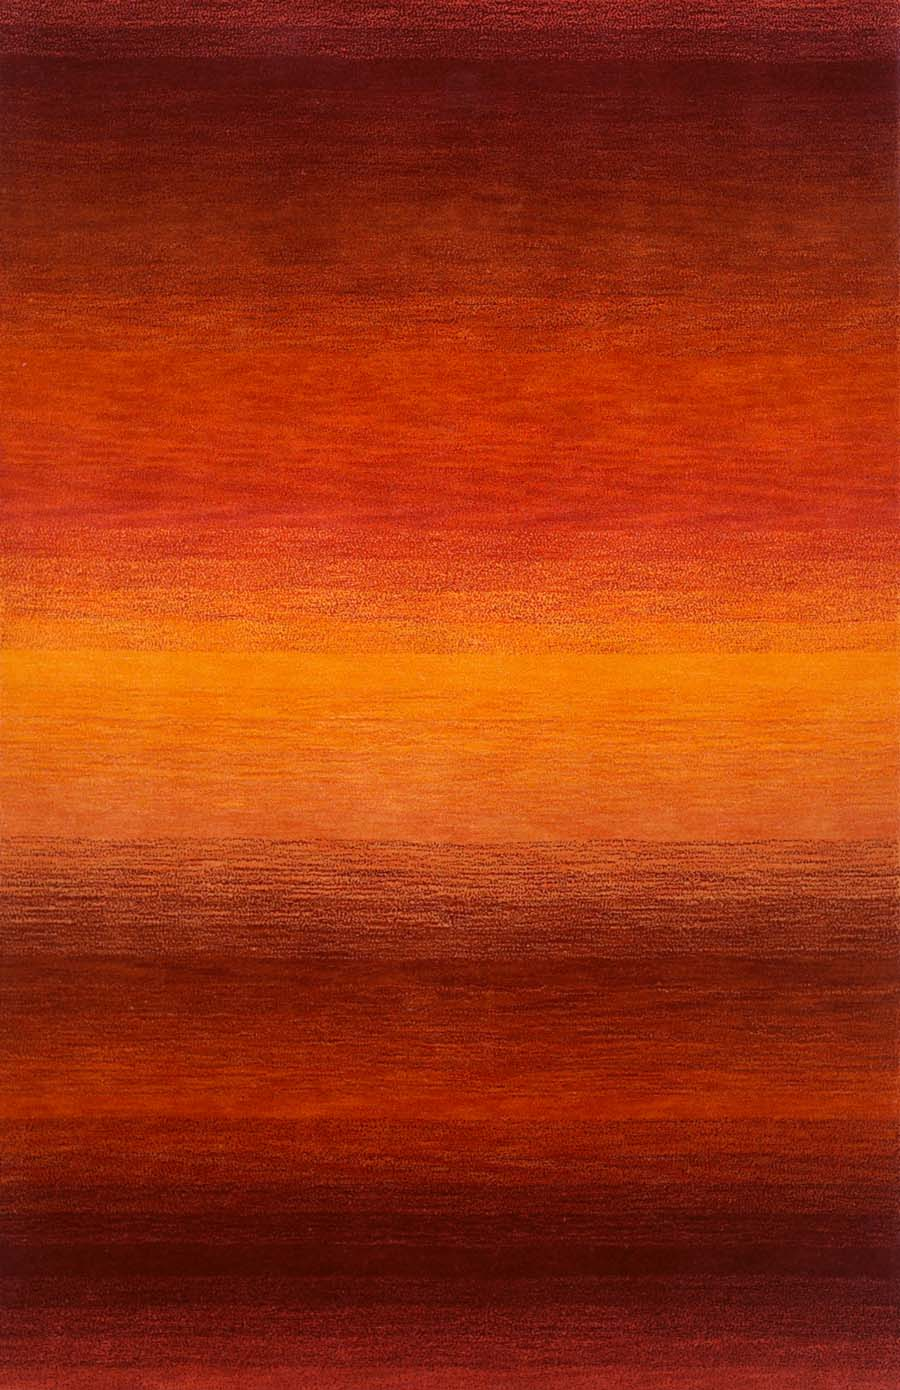 Ombre 9620 18 Sunrise Rug by Trans Ocean